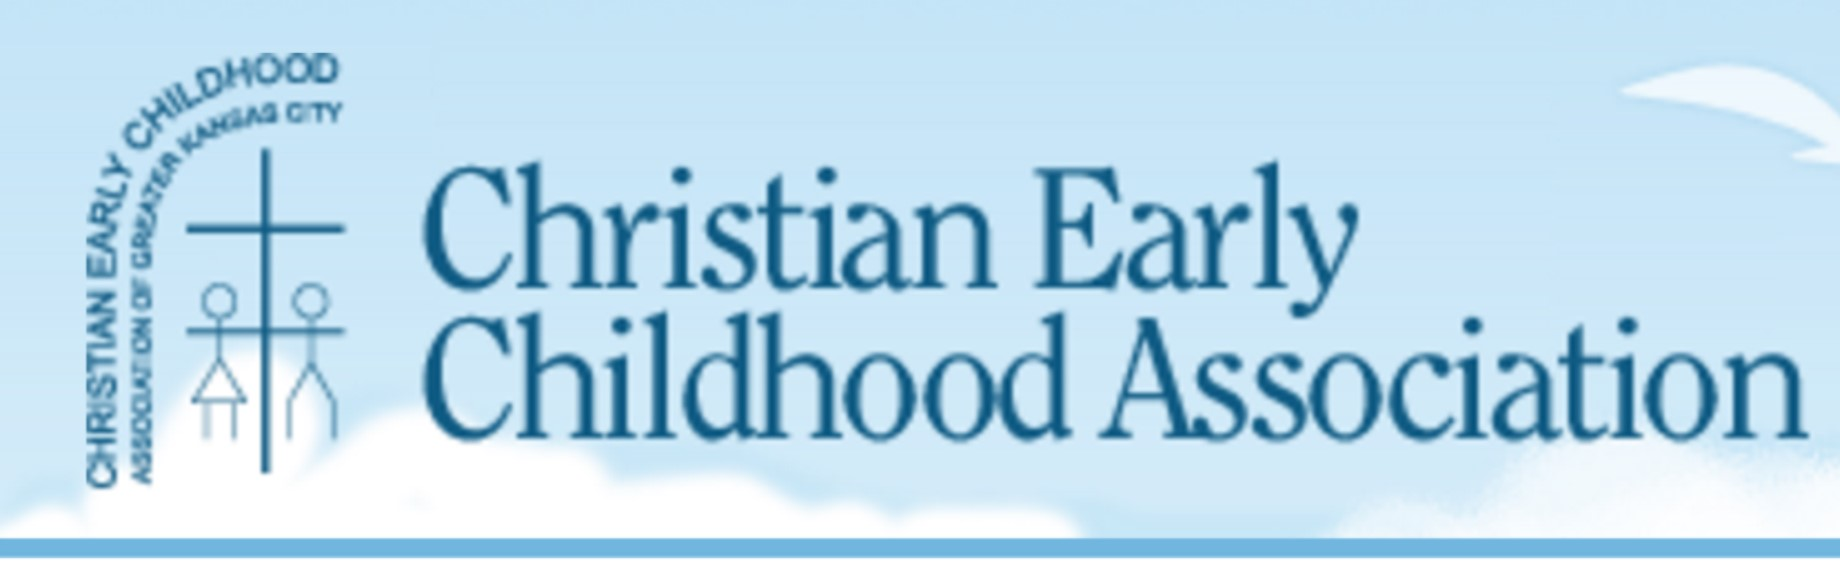 Christian Early Childhood Association